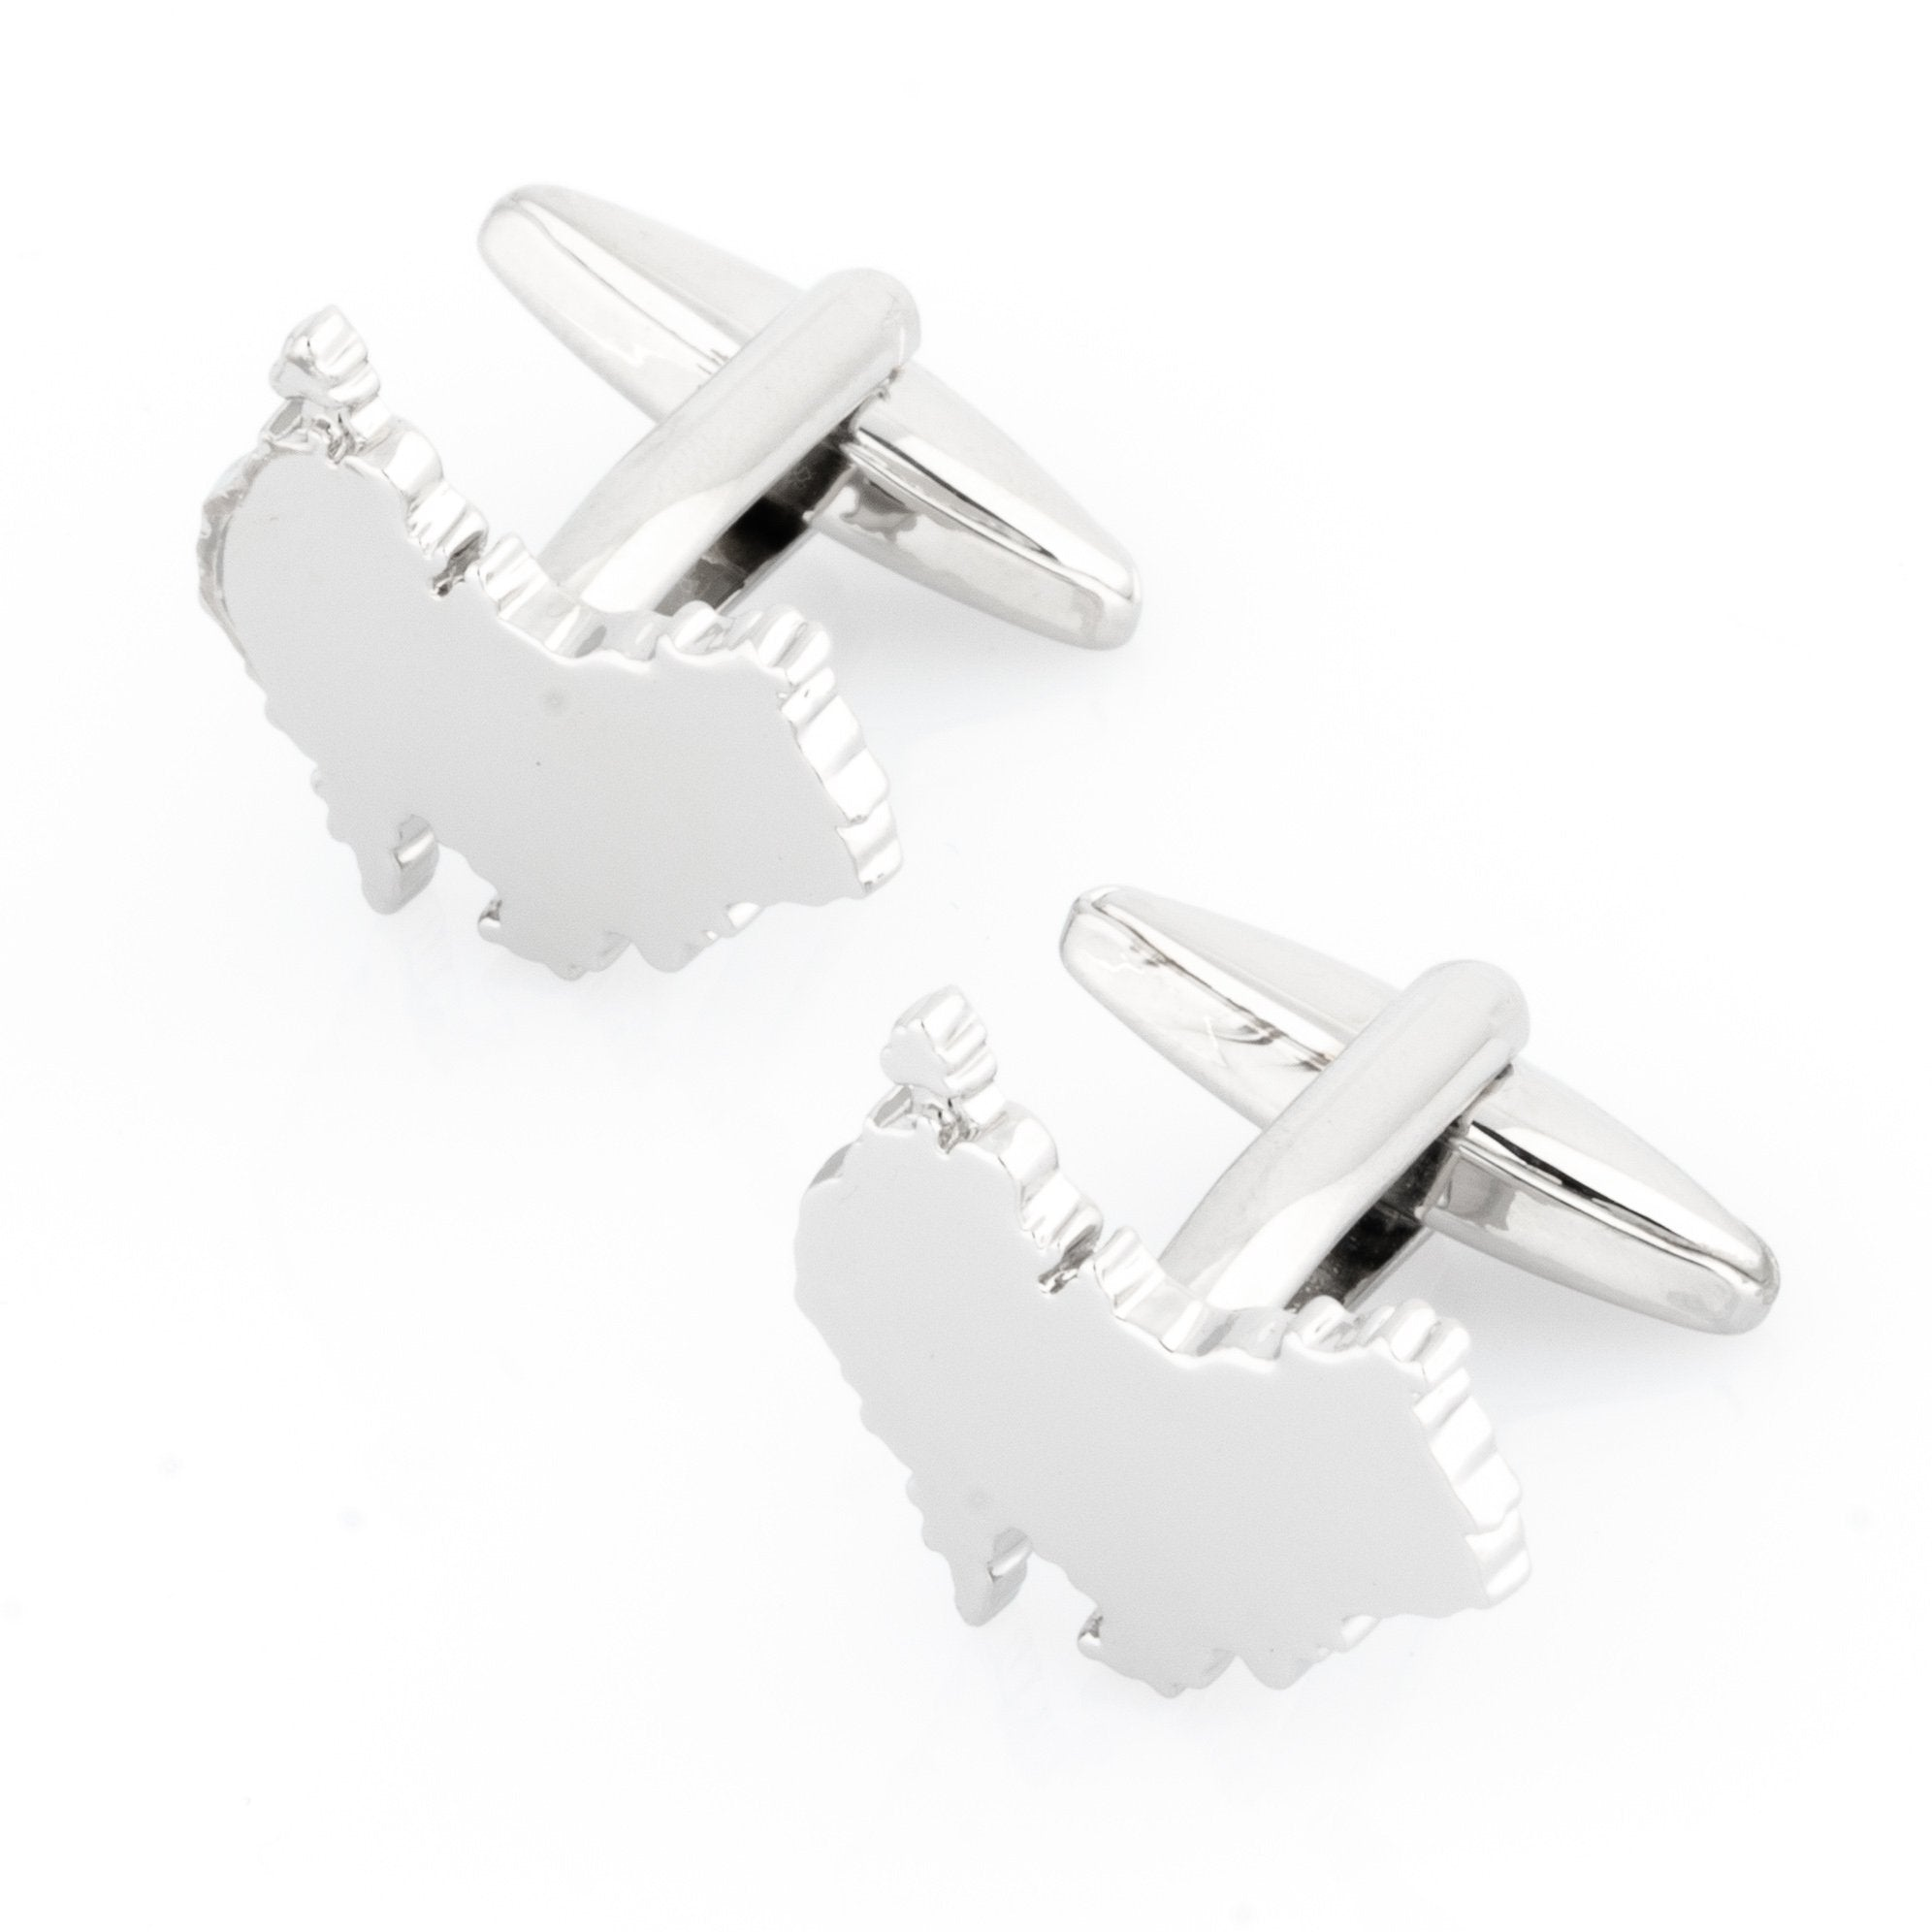 Outline Australian Map Cufflinks Novelty Cufflinks Clinks Australia Outline Australian Map Cufflinks